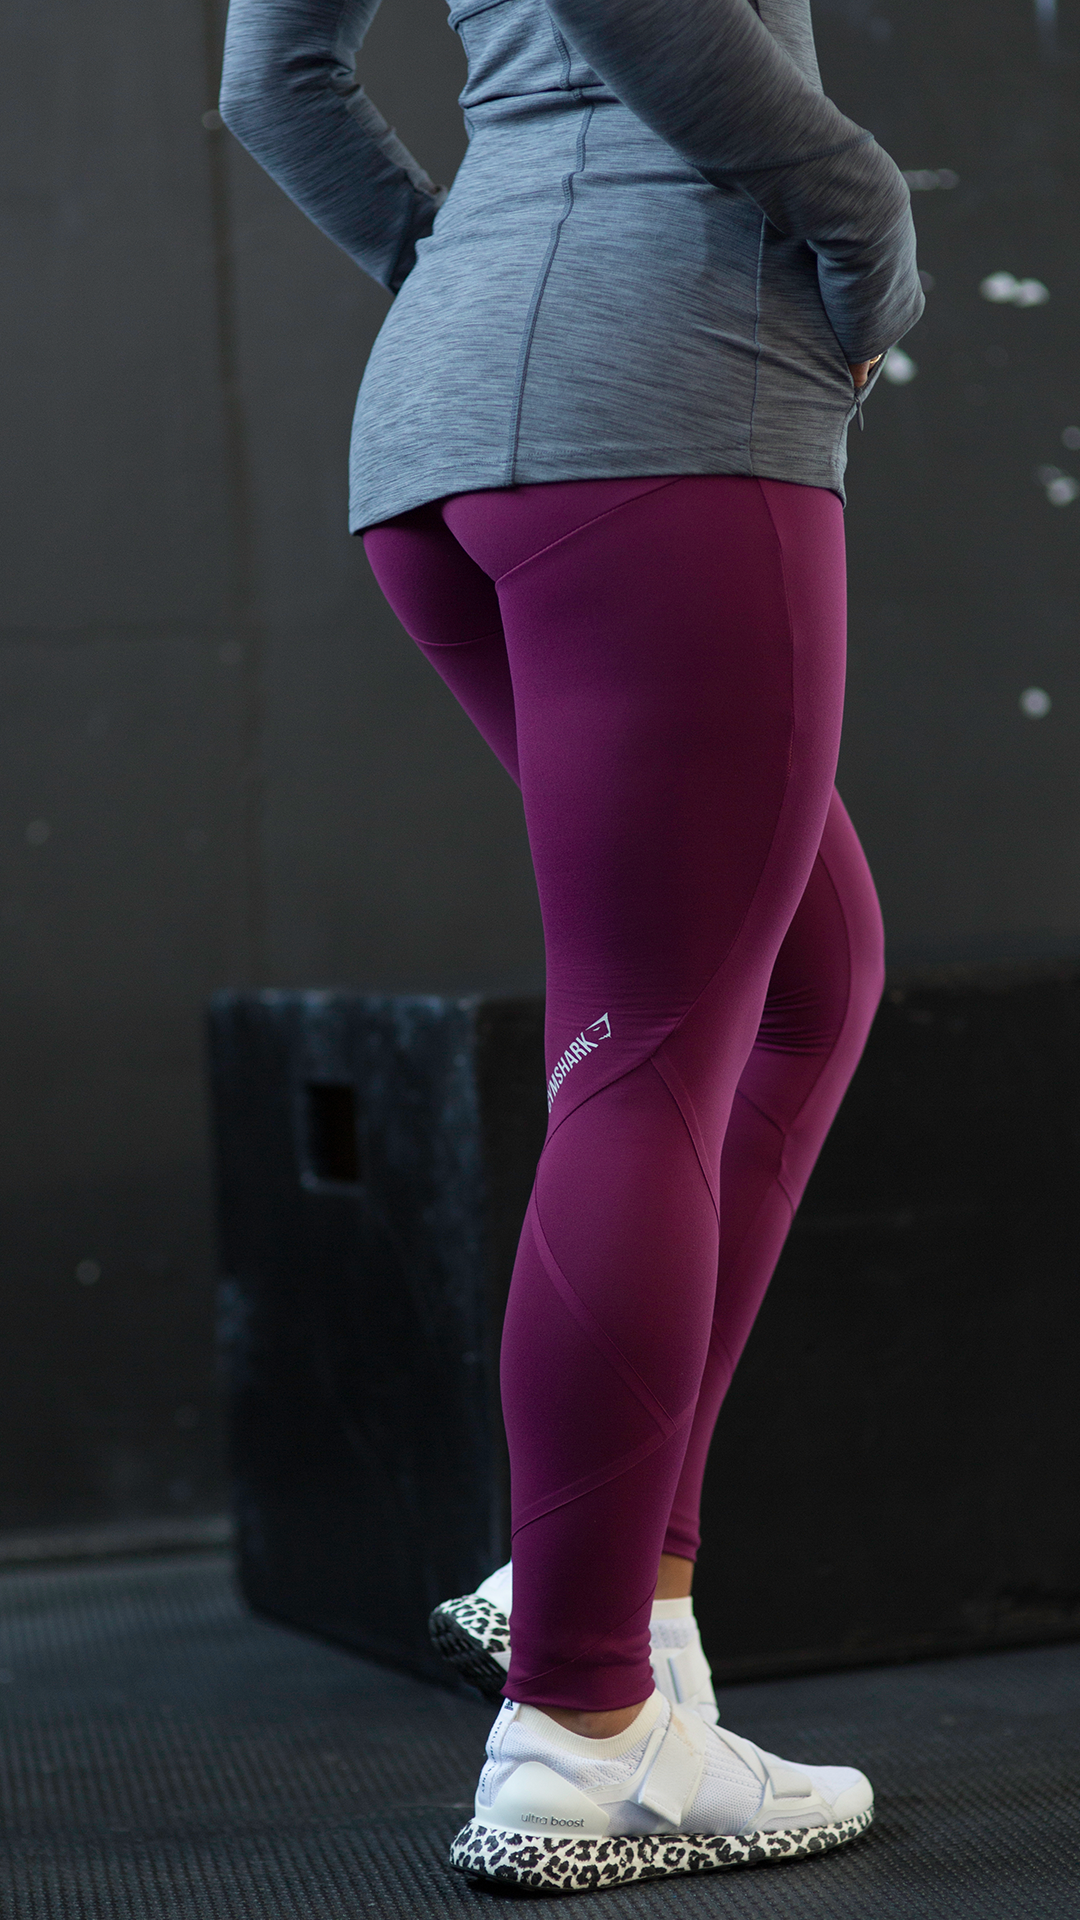 745b19cf21 The Deep Plum Fused Ankle Leggings. Perfect colours for the Autumn season  drawing in. #Gymshark #OutfitInspiration #Workout #Fitness #Red #Pink # HighWaisted ...